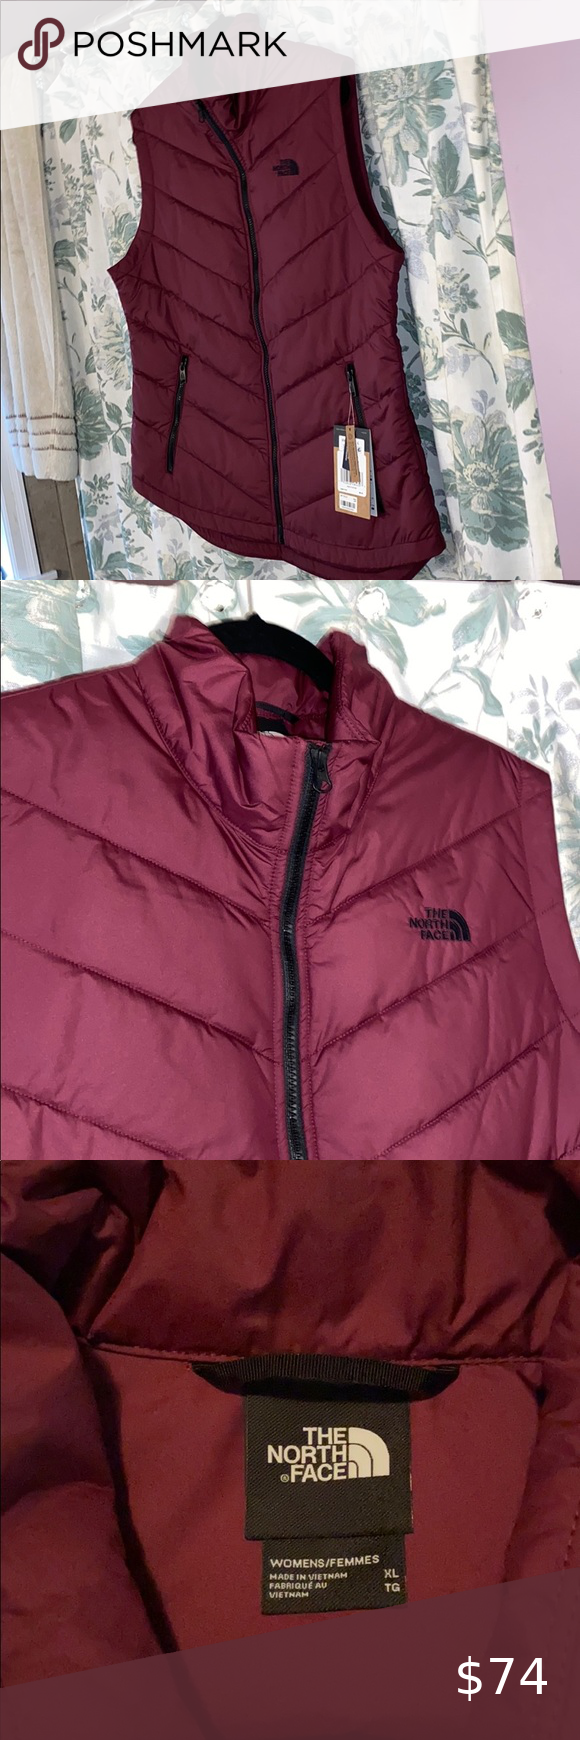 The North Face Burgundy Wine Faux Down Vest Burgundy Wine Down Vest Clothes Design [ 1740 x 580 Pixel ]